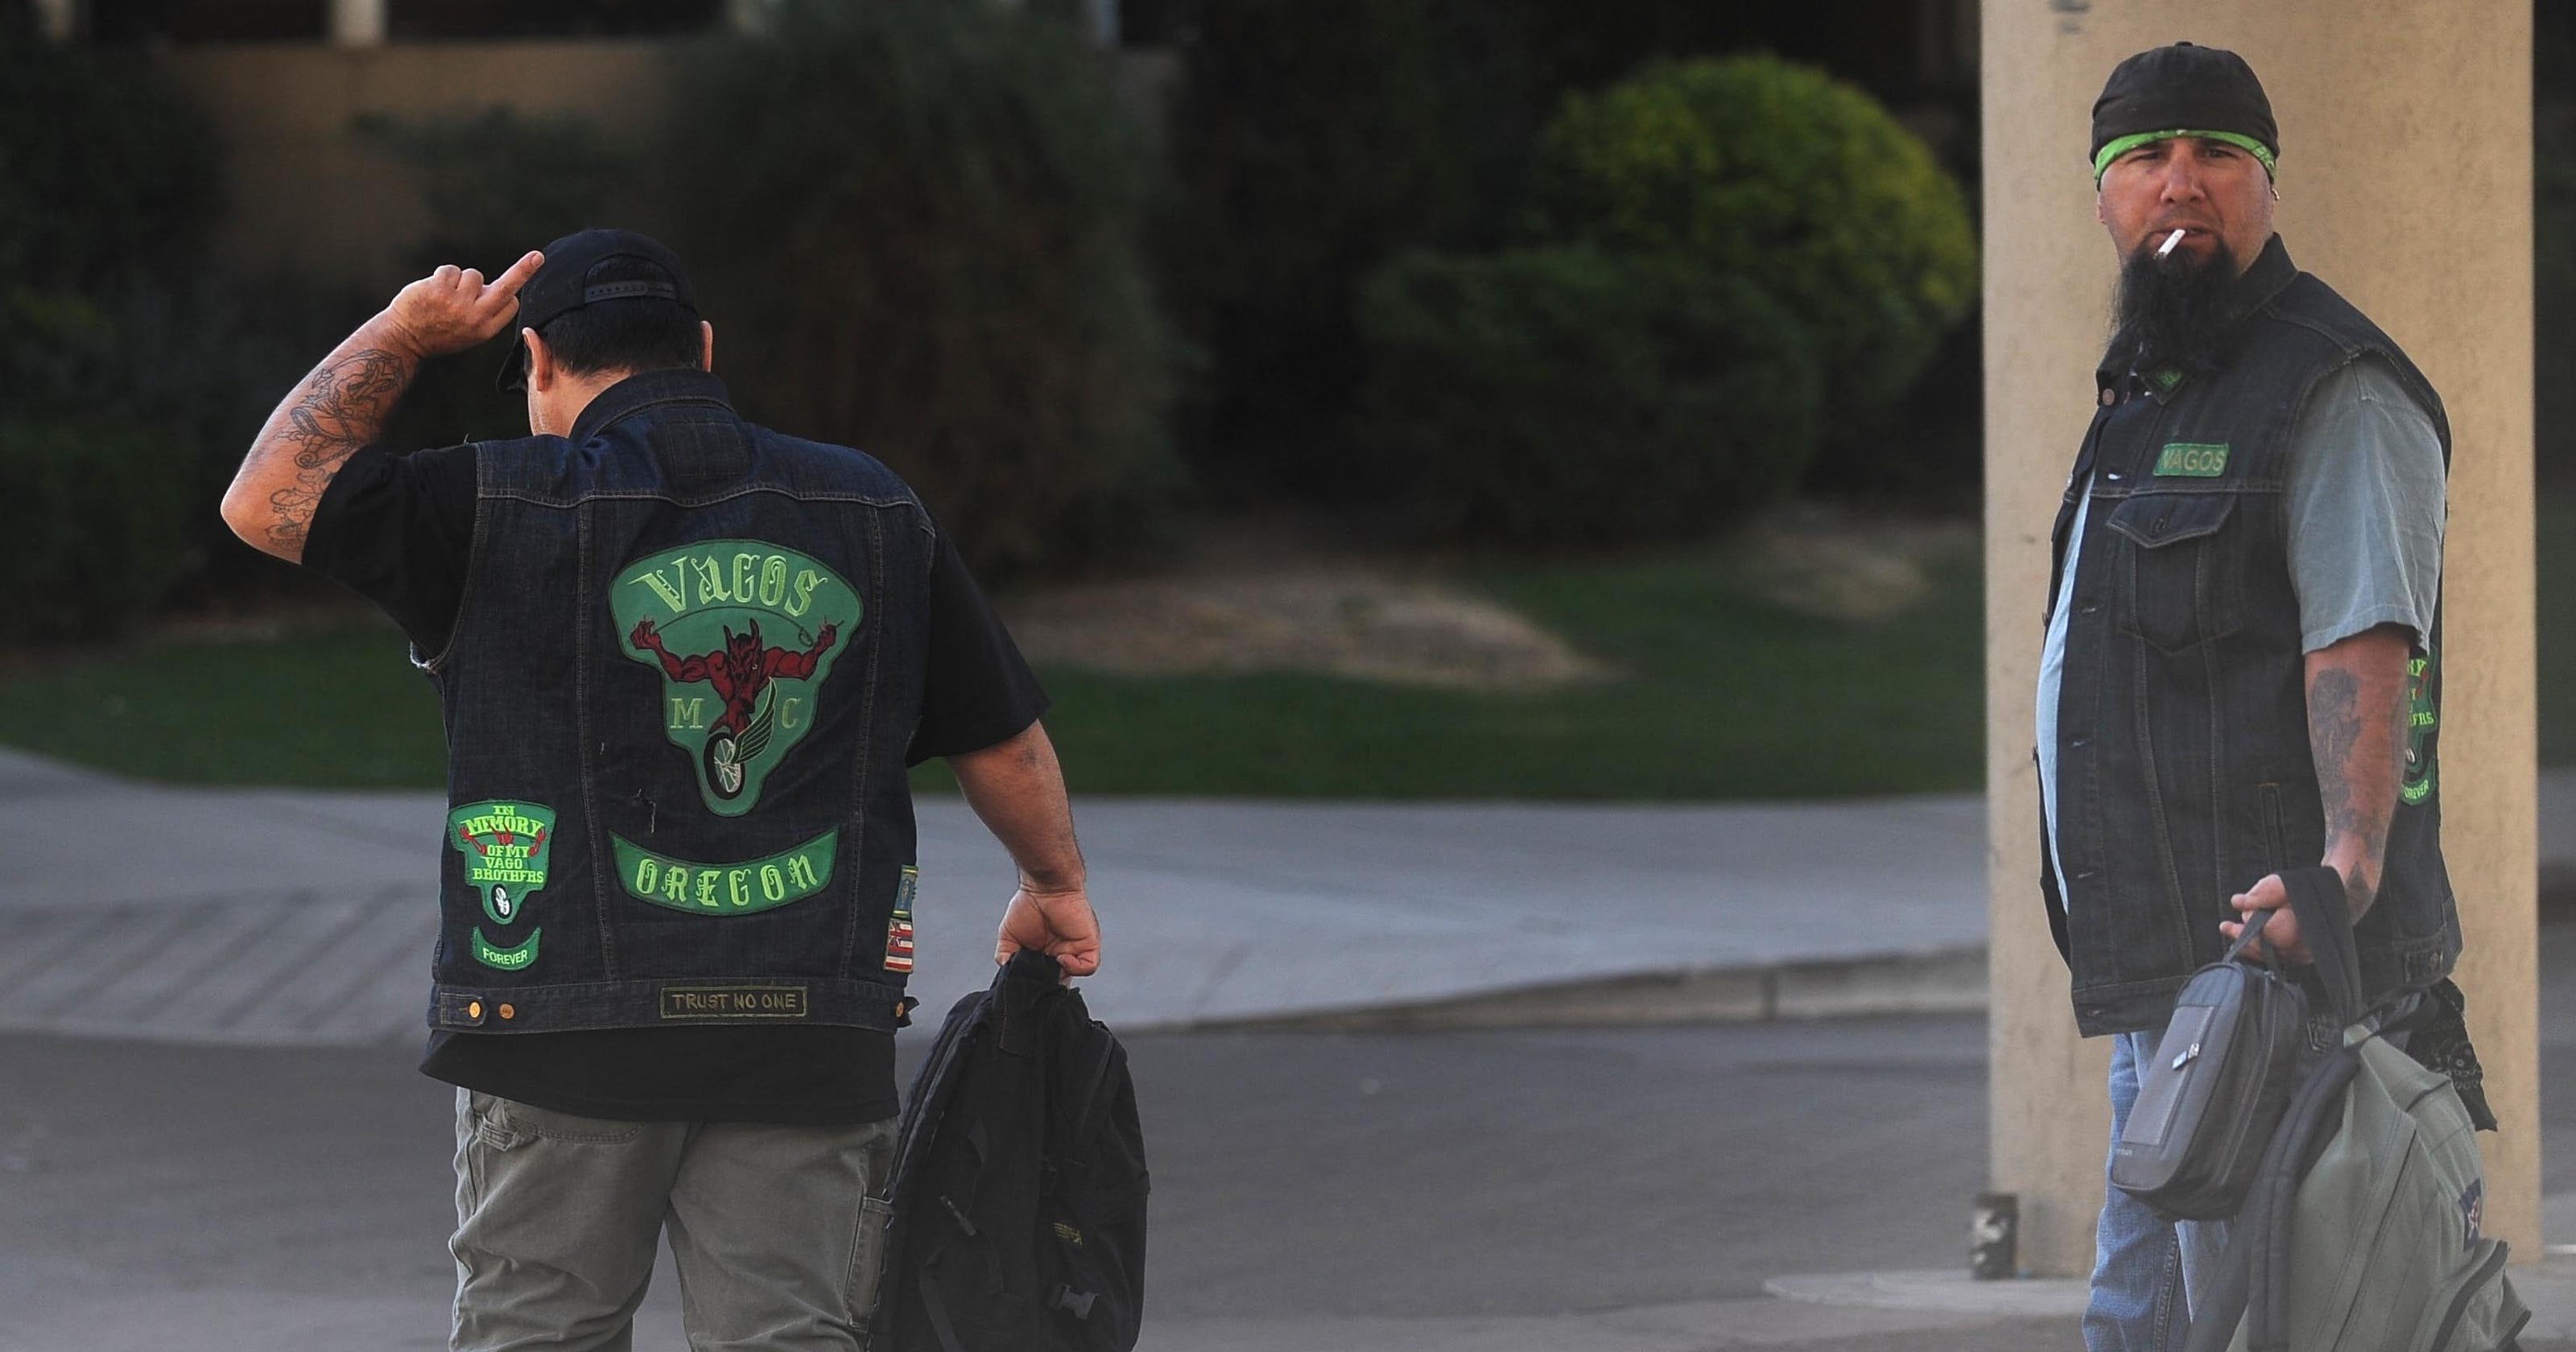 23 arrested in 3 states in Vagos motorcycle gang crime case